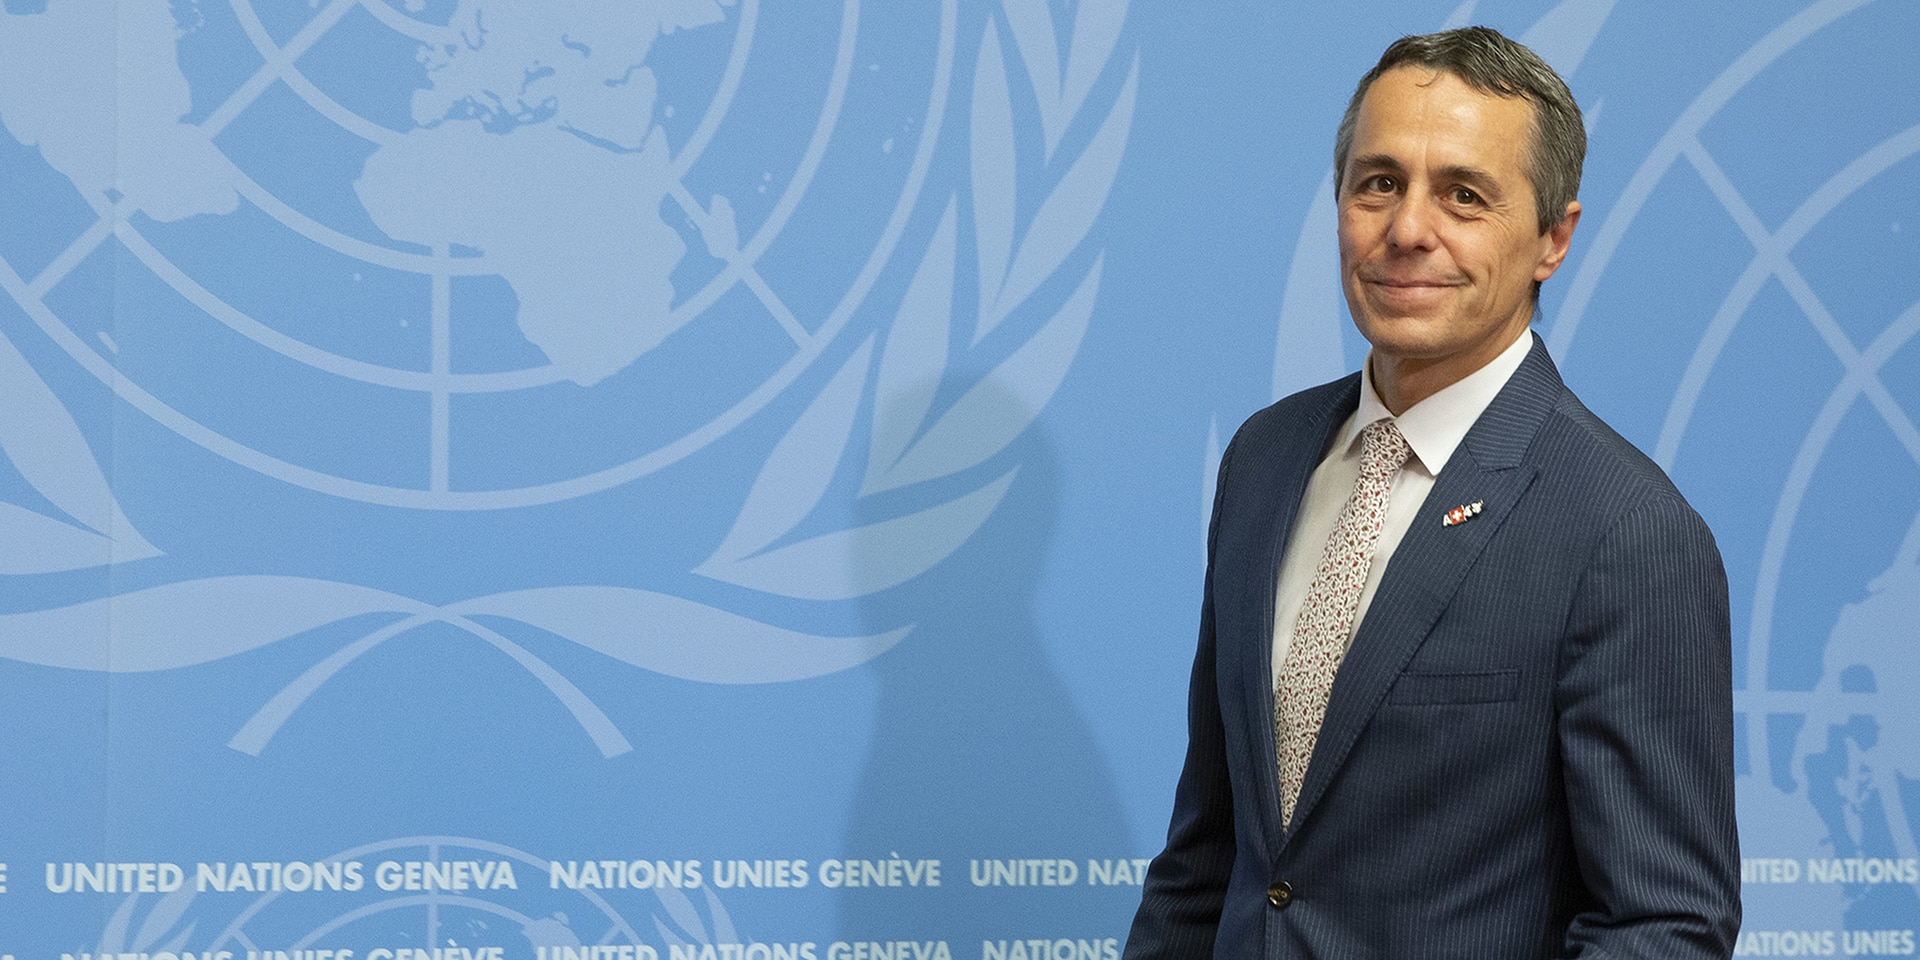 Federal Councillor Ignazio Cassis stands in front of a podium, behind him a wall with the UN logo.